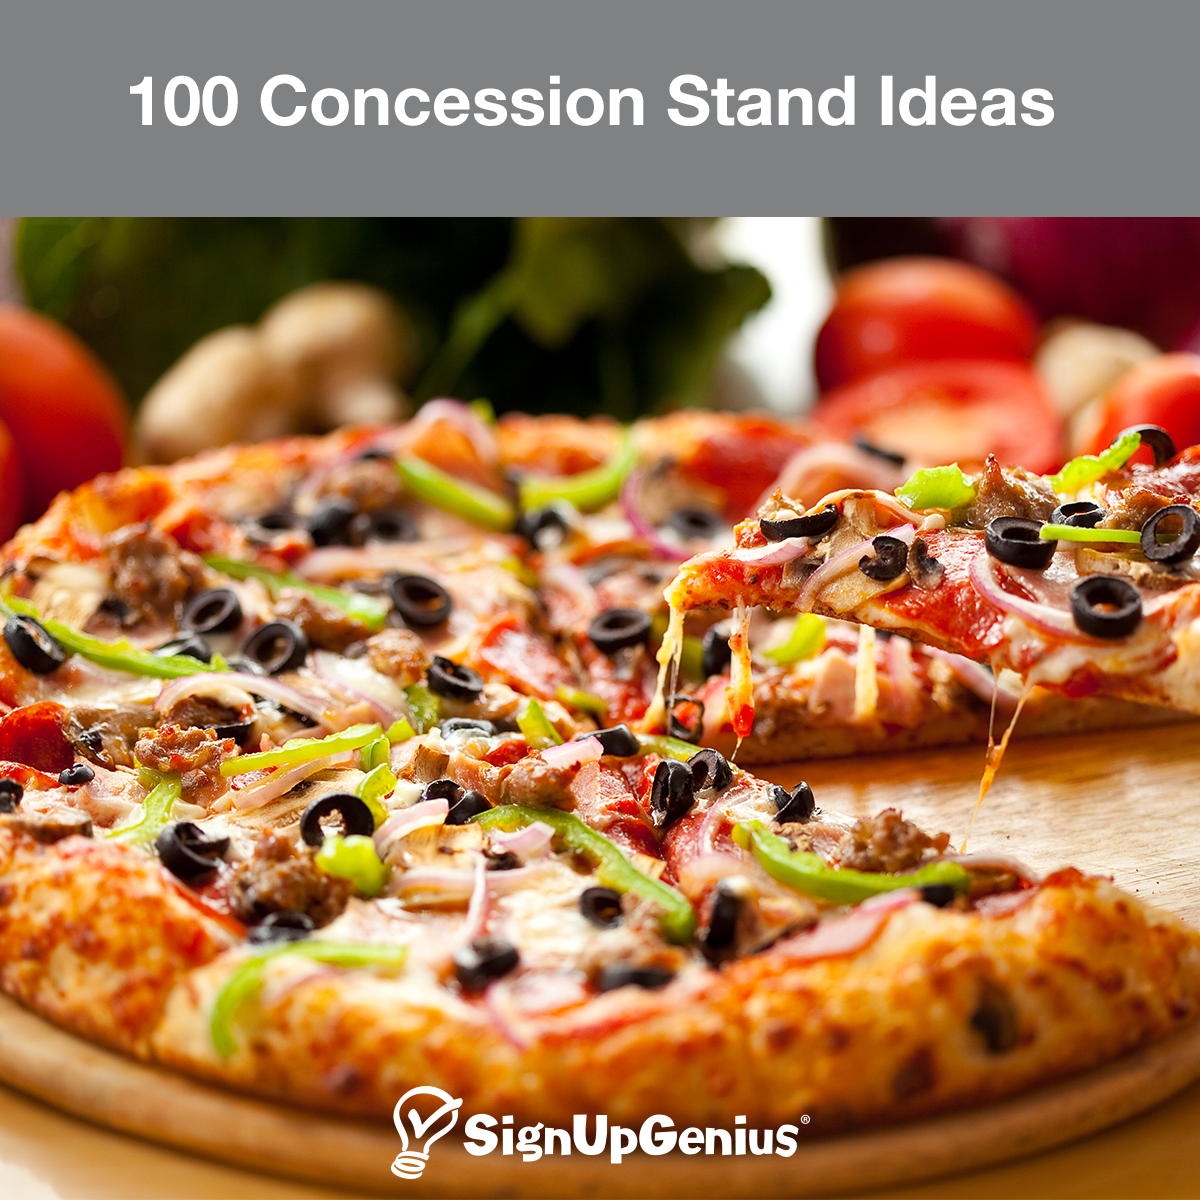 100 concession stand ideas   bakery   pinterest   concession stand